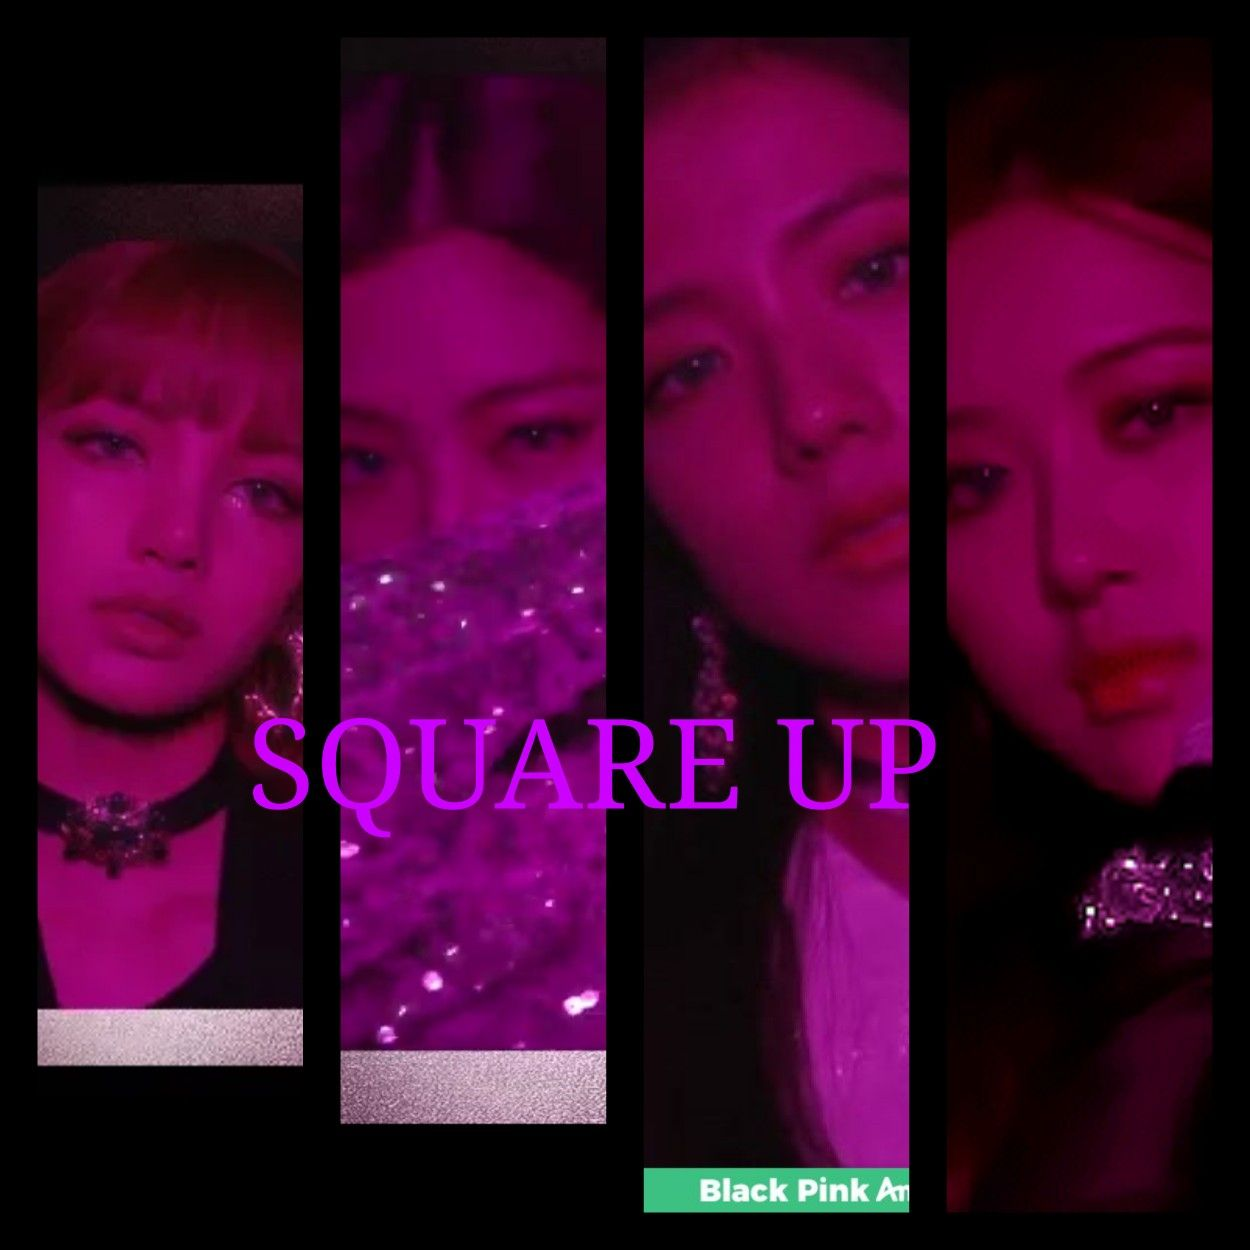 23 Blackpink Square Up Wallpapers On Wallpapersafari